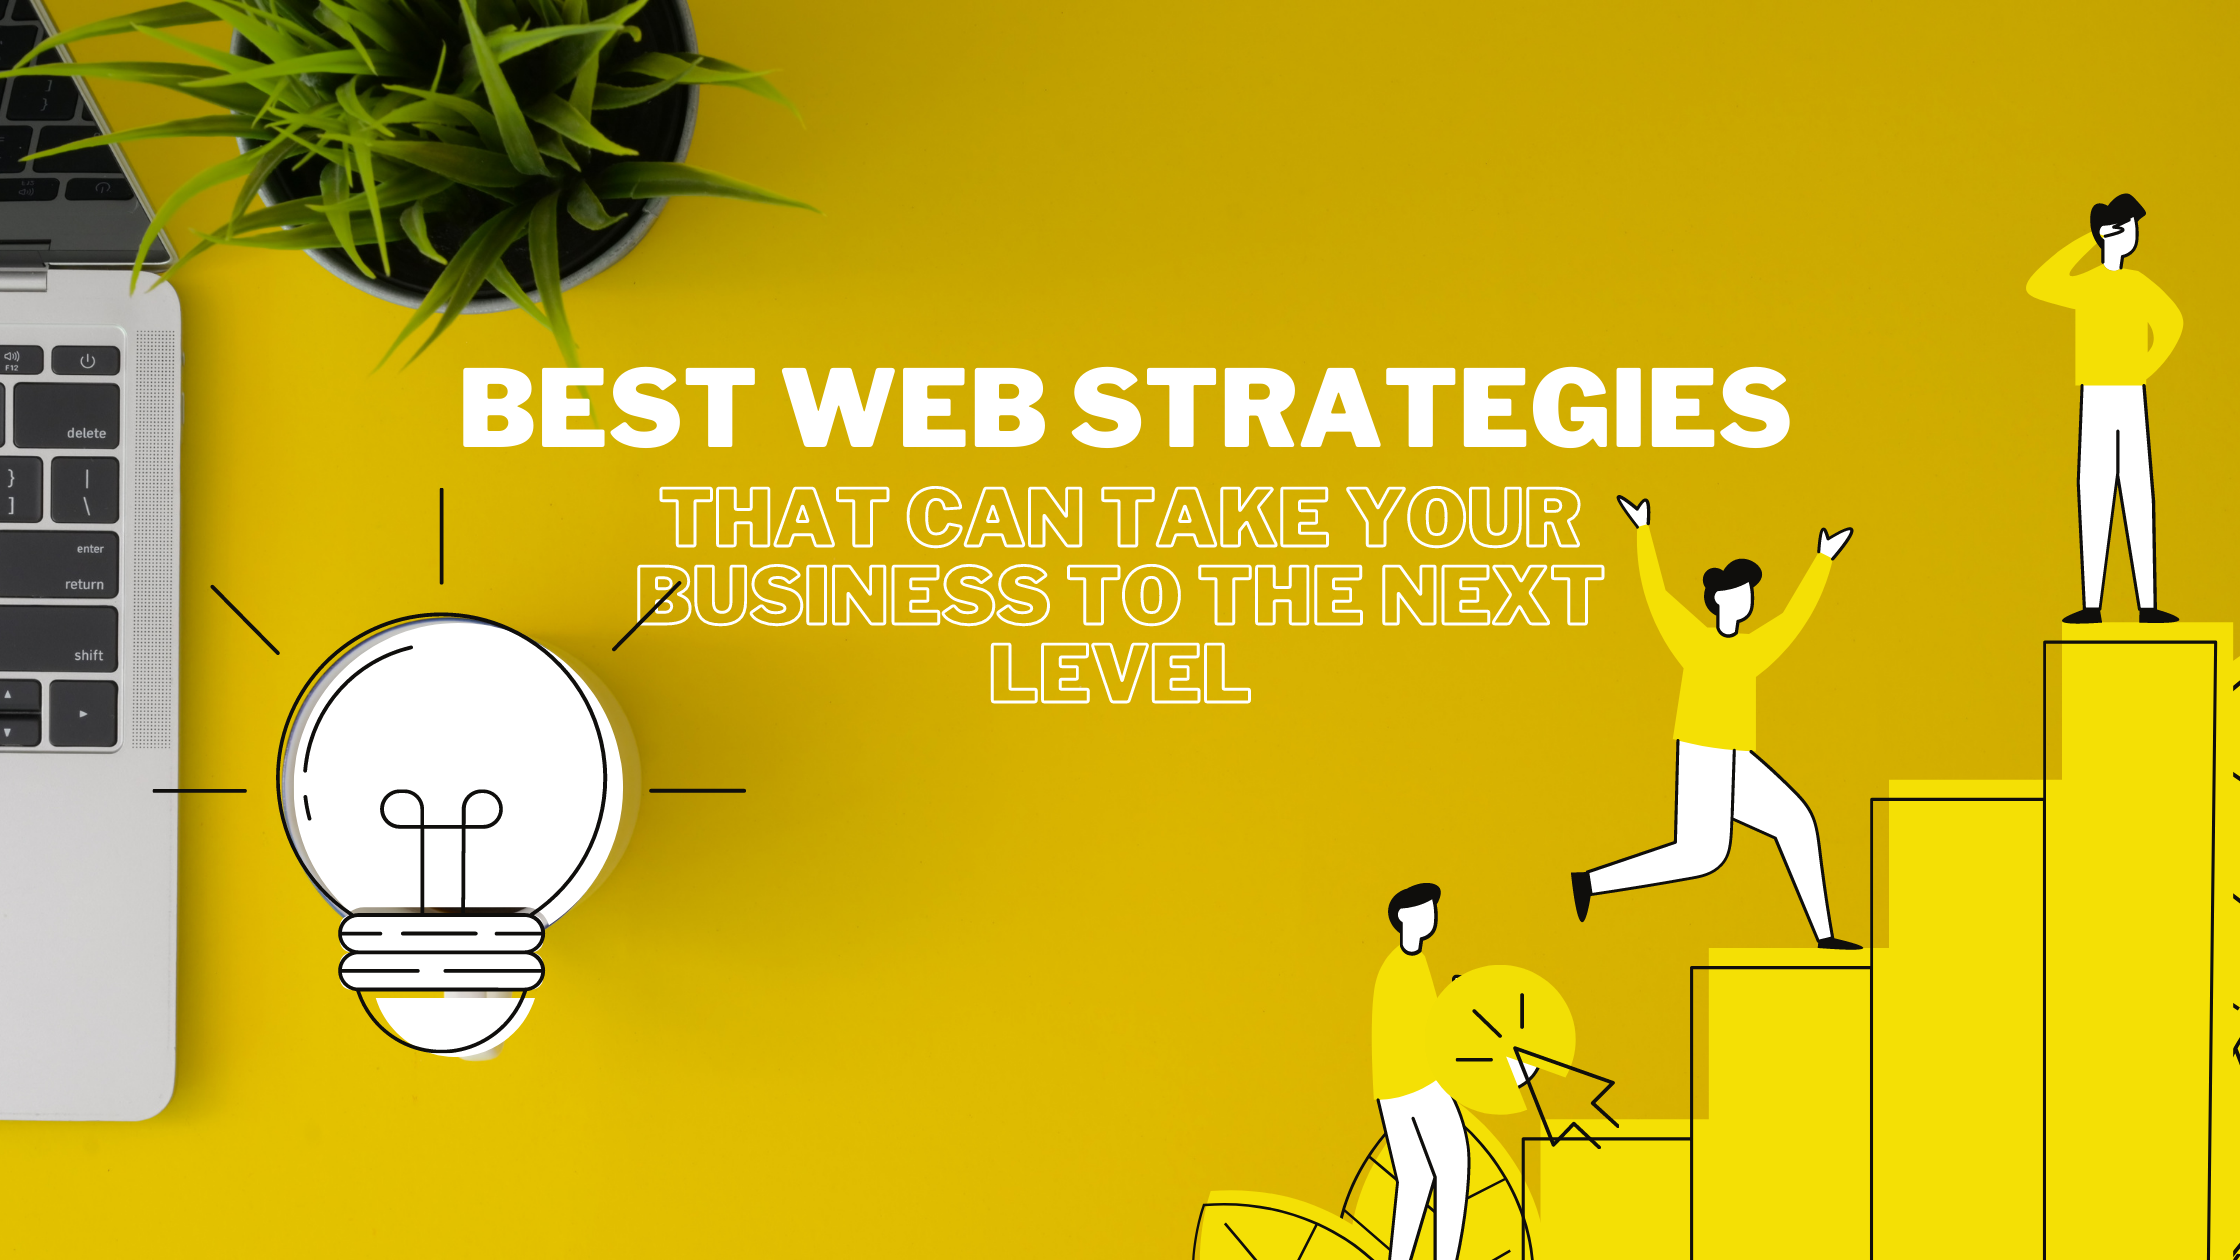 Best web strategies that can take your business to the next level